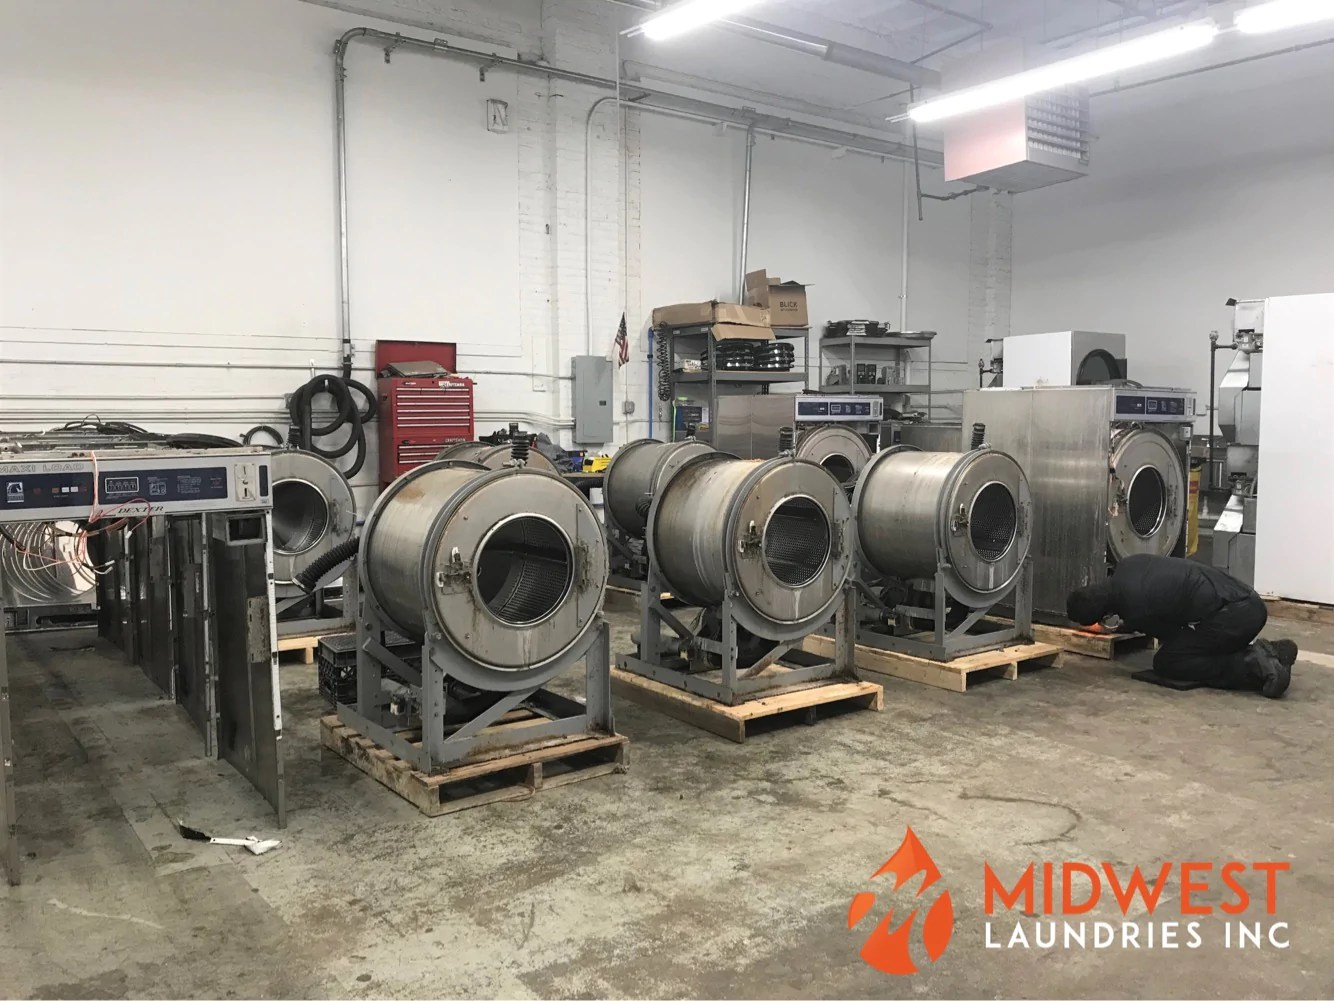 midwest laundries rebuilding coin op washers  [ 1334 x 1001 Pixel ]